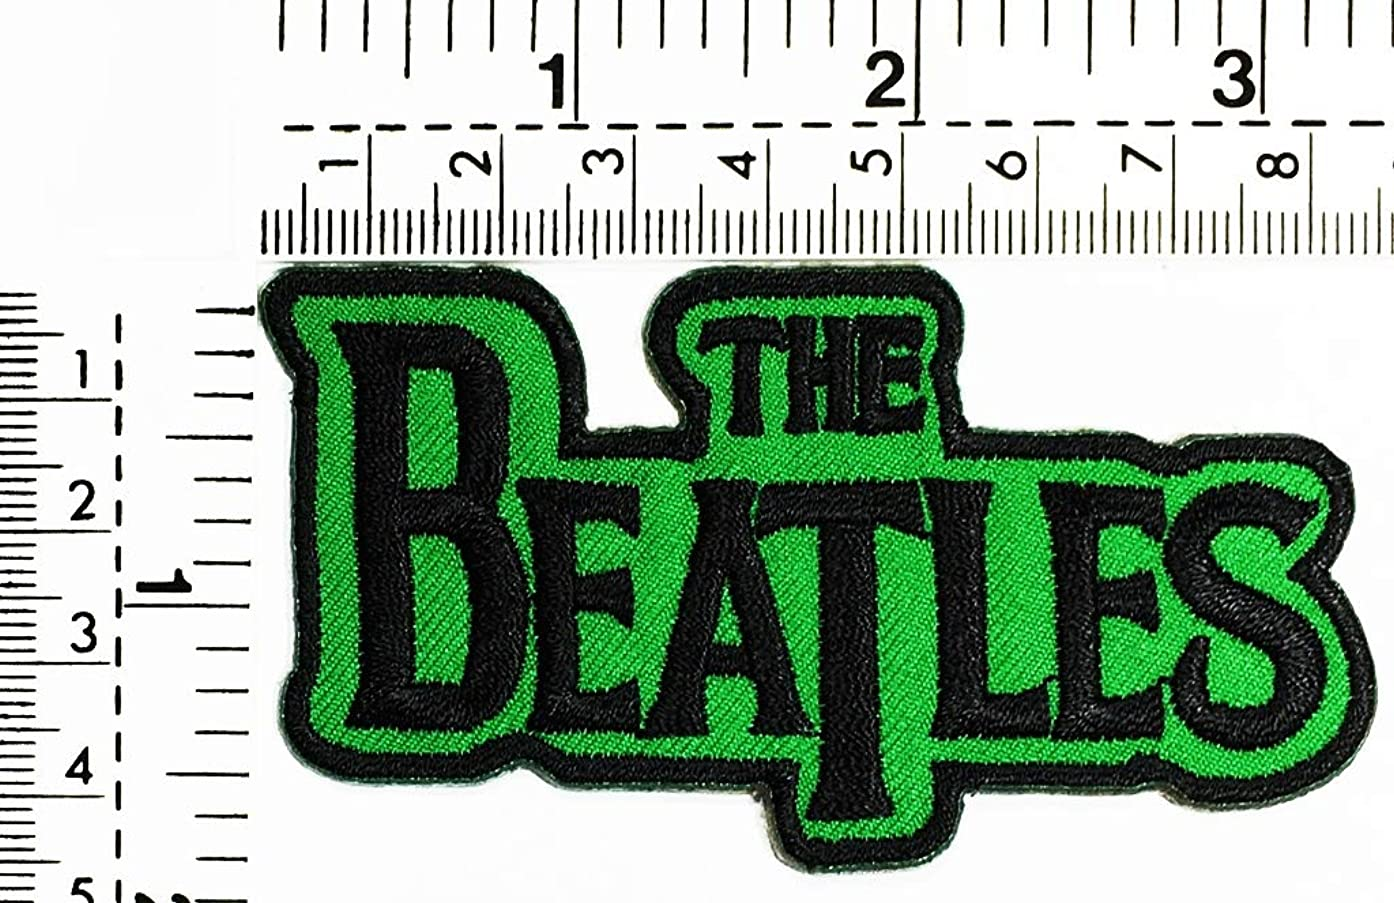 Music Band Folk Songs Heavy Music Dance_203 Punk Rock Music Hard Music Punk DIY Patch Applique for Clothes Great as Happy Birthday Gift